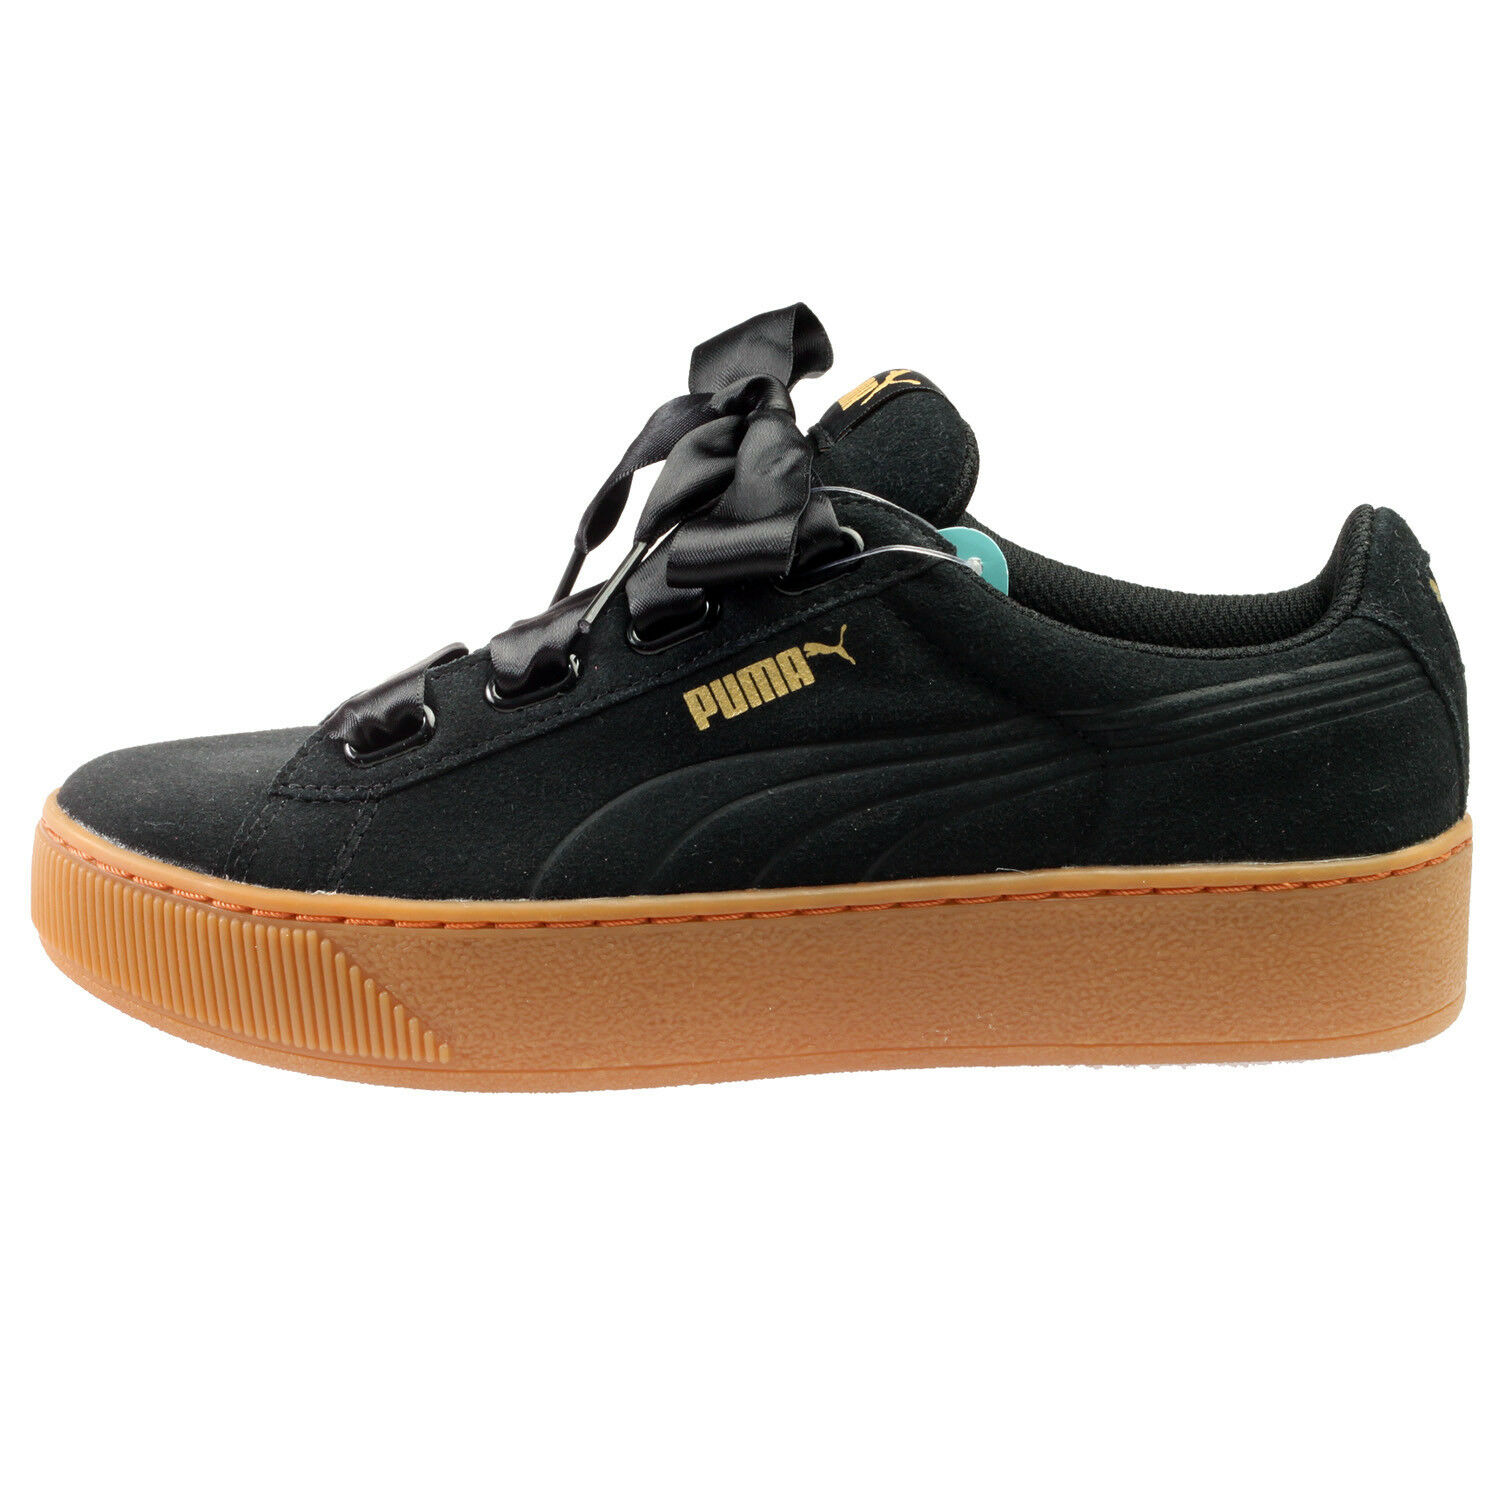 Puma Vikky Black Platform Ribbon Womens 364979-01 Black Vikky Suede Bow Shoes Size 8 38e9cb